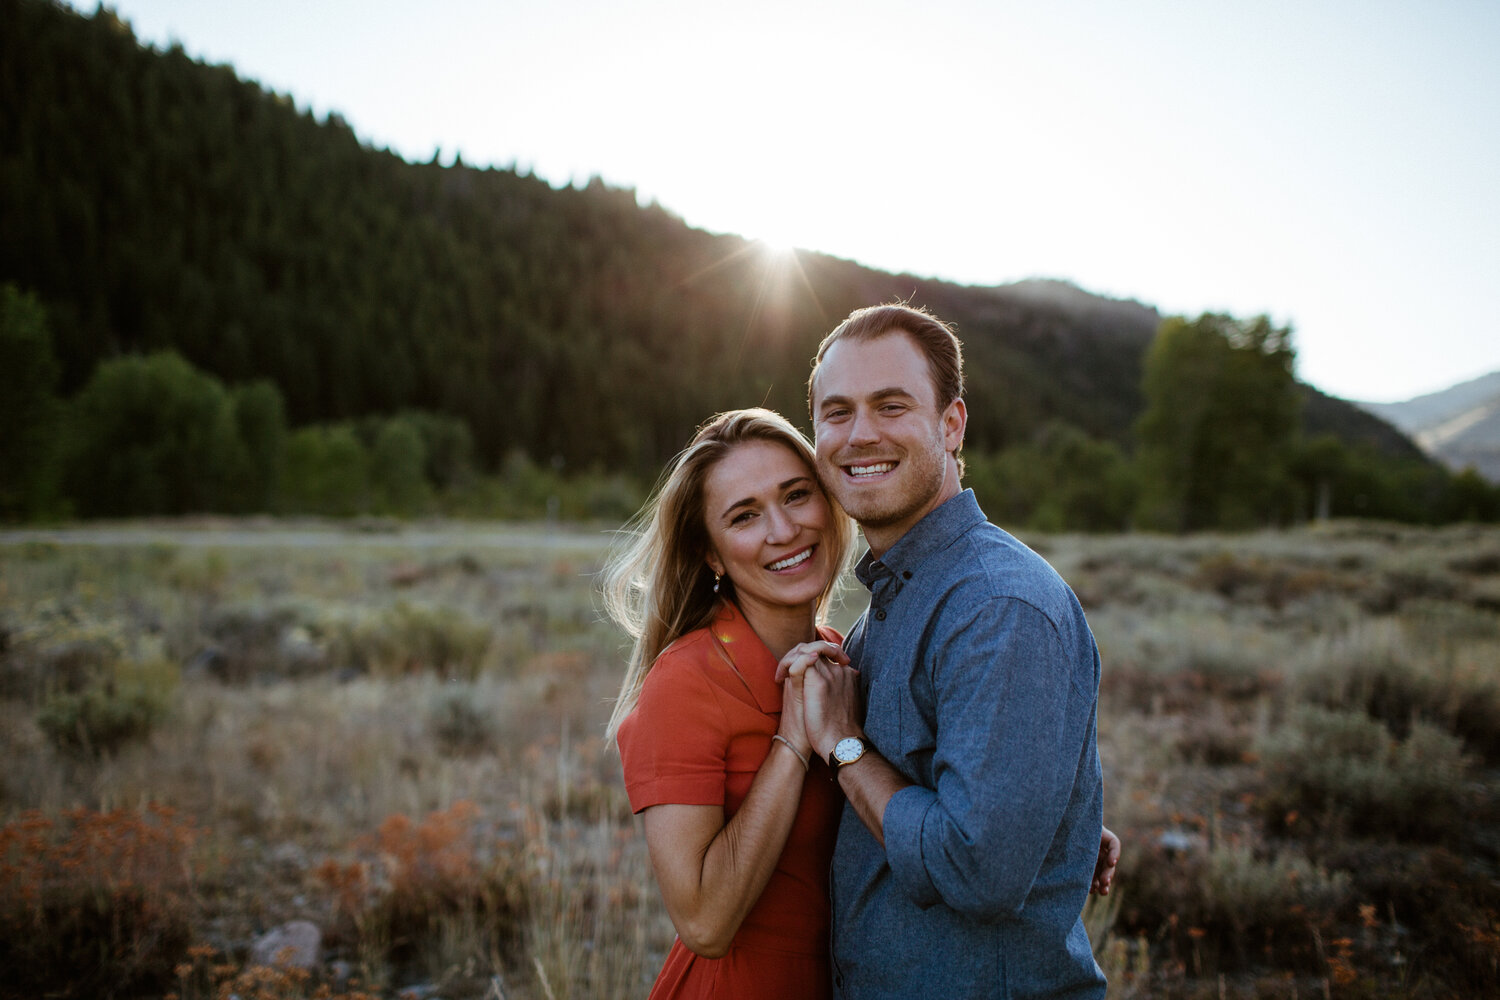 sun-valley-engagement-photos-christinemarie-10.jpg